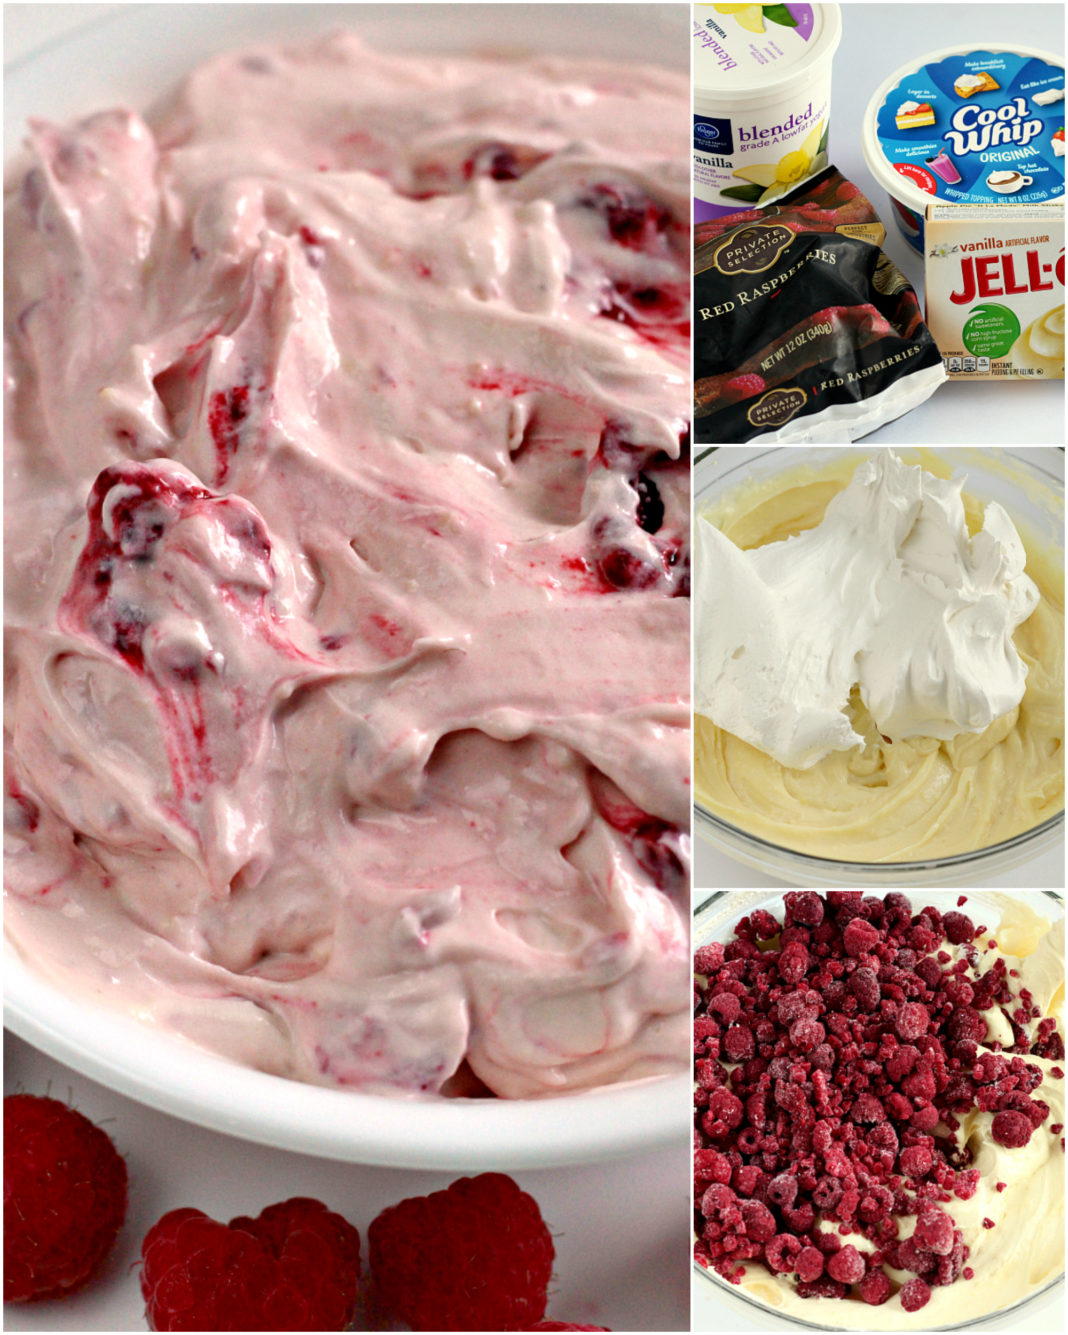 Raspberry Vanilla Jello Salad is one of the easiest recipes you will ever make and it